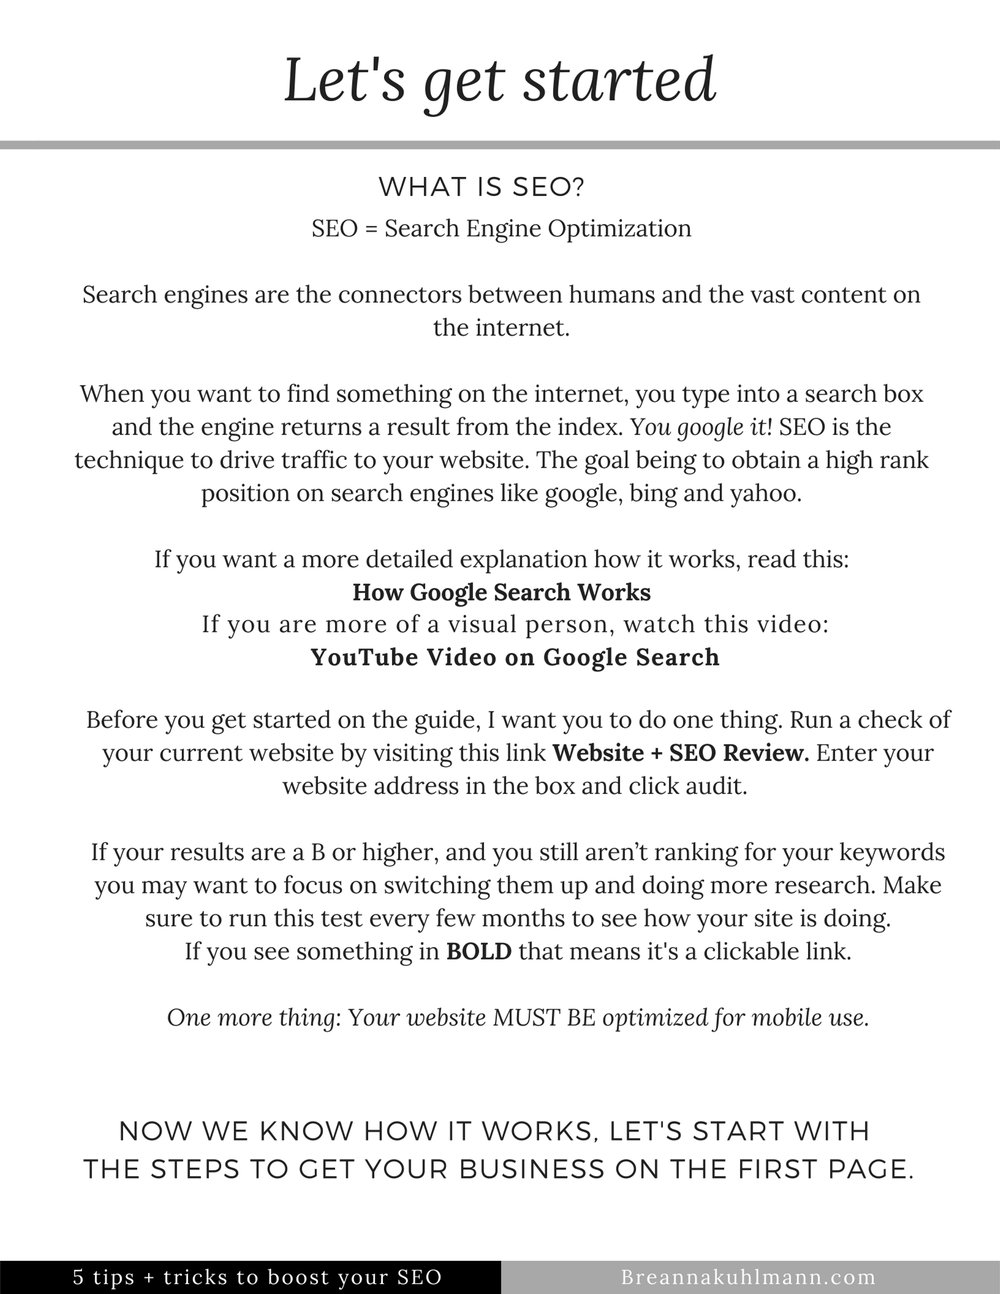 Do it yourself SEO - Squarespace - Breanna Kuhlmann.jpg